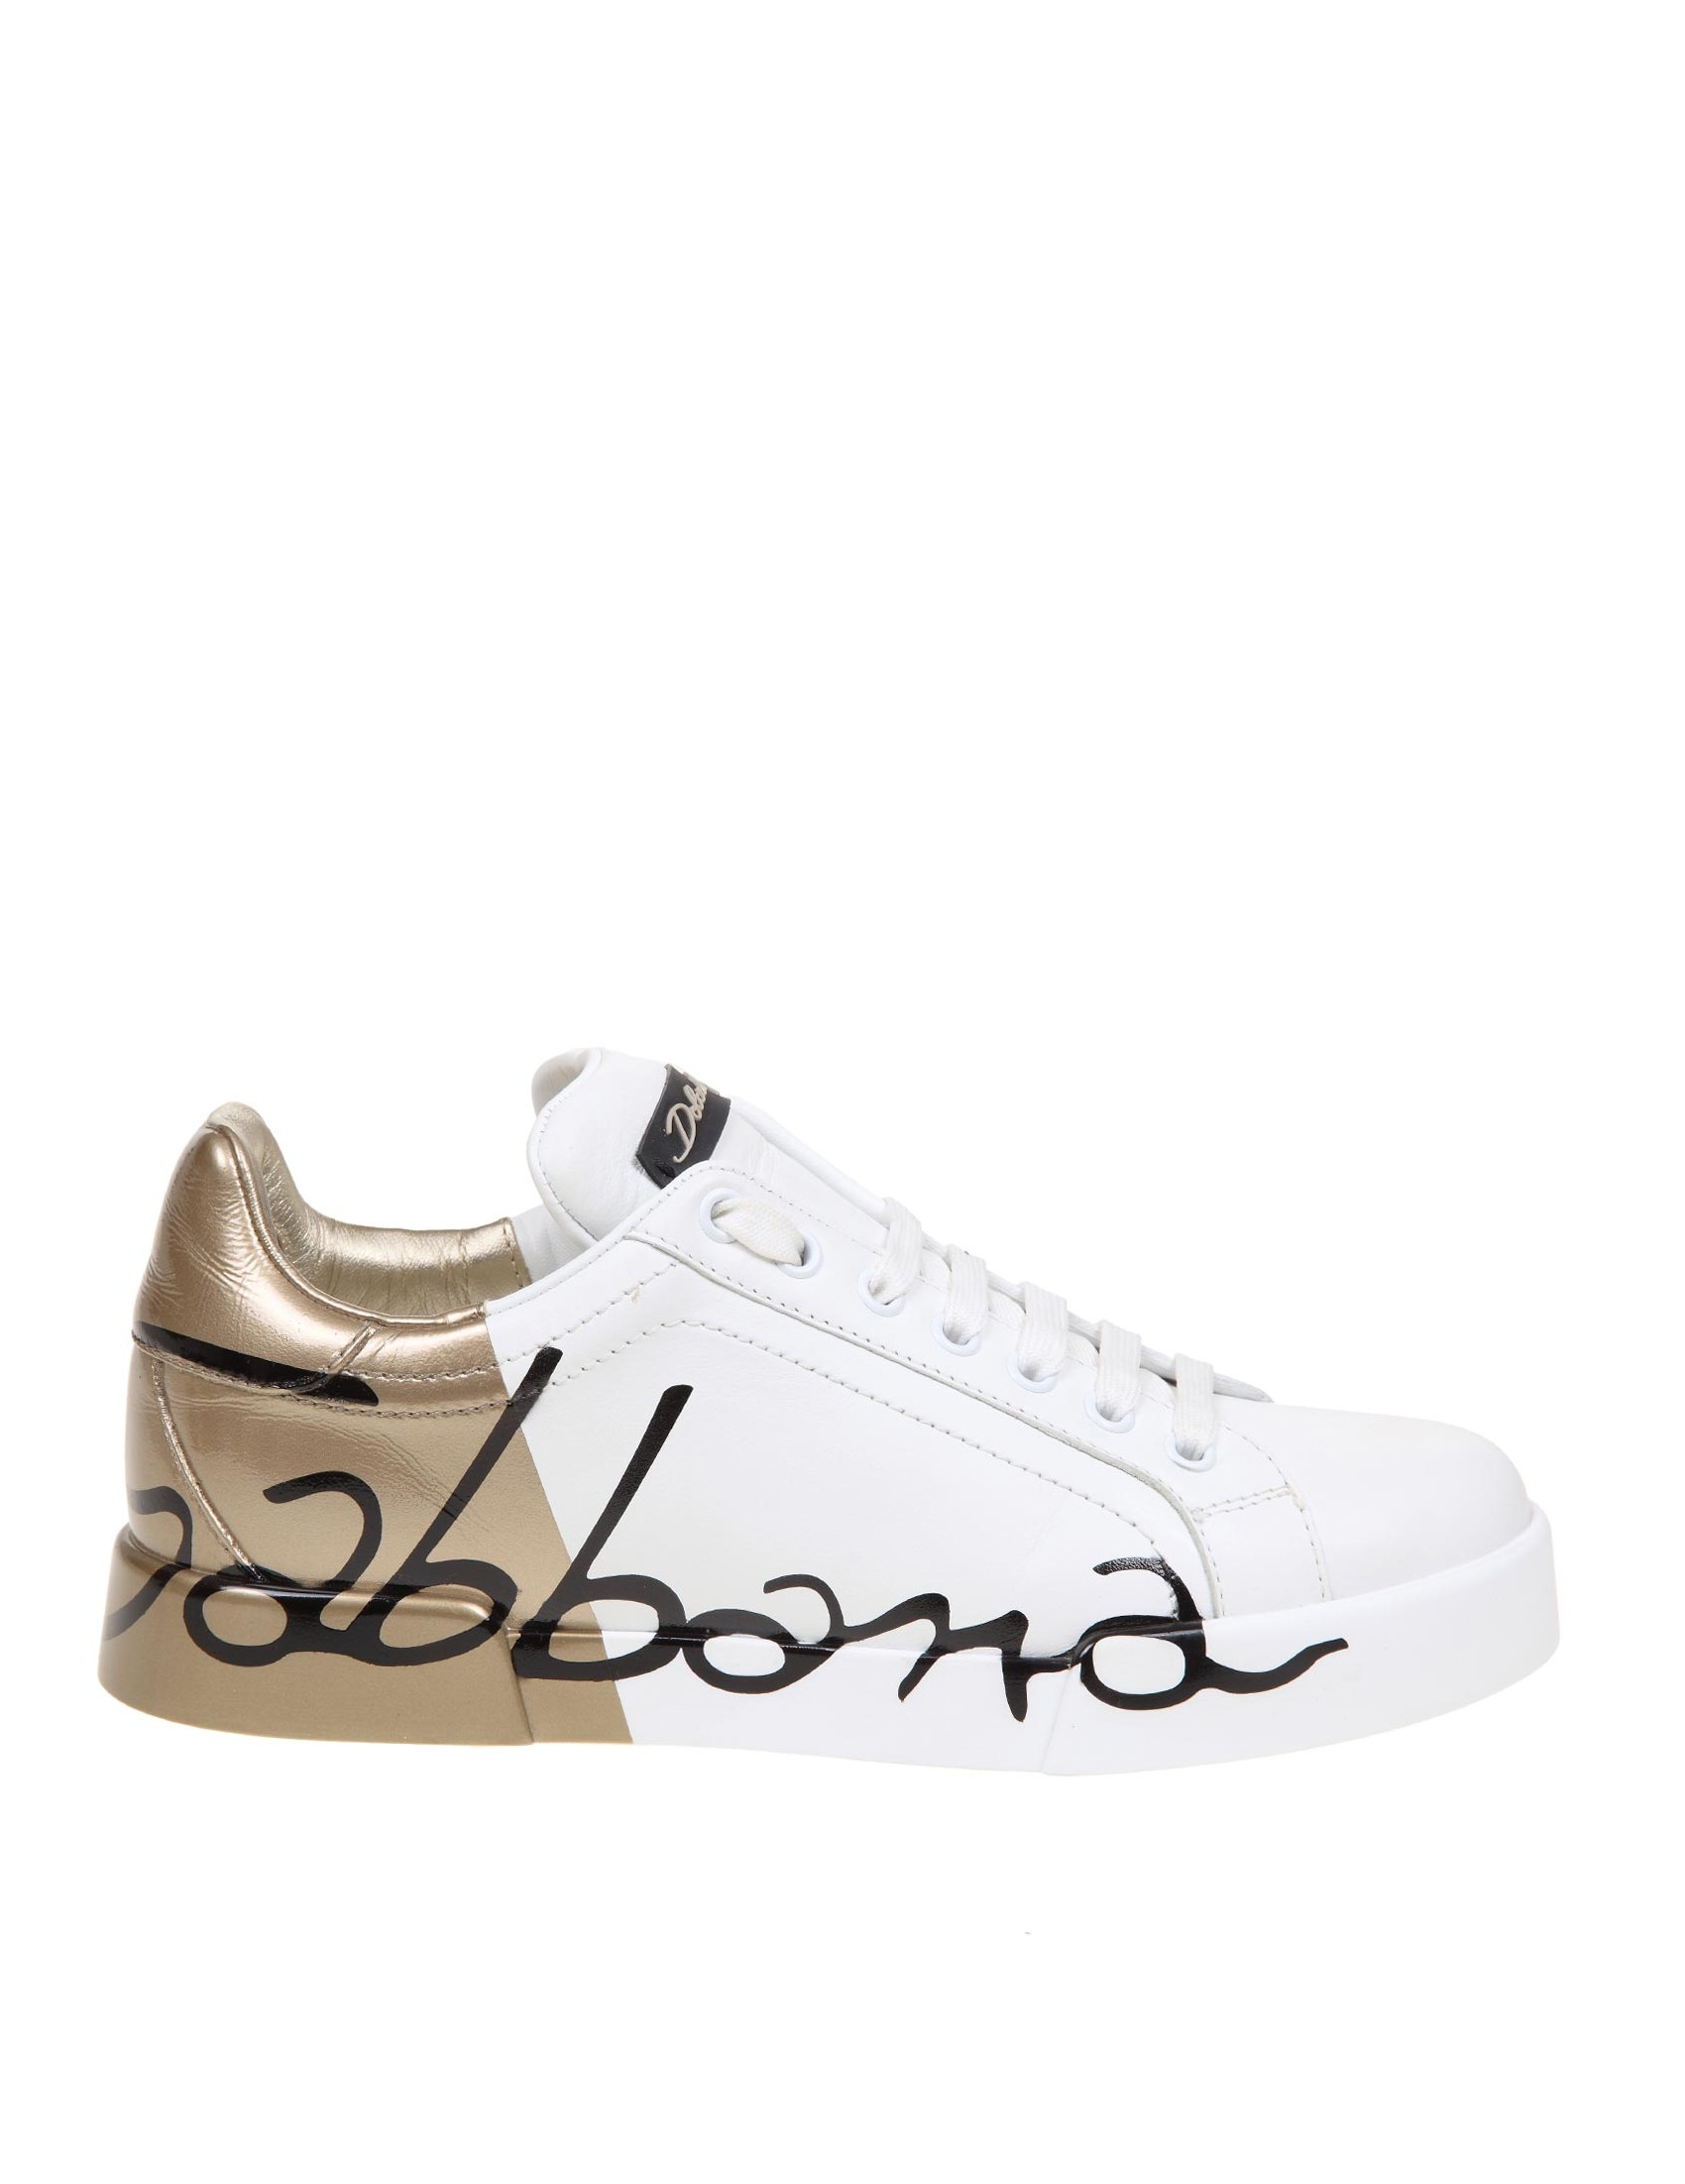 Dolce & Gabbana DOLCE & GABBANA PORTOFINO SNEAKERS IN WHITE AND GOLD LEATHER